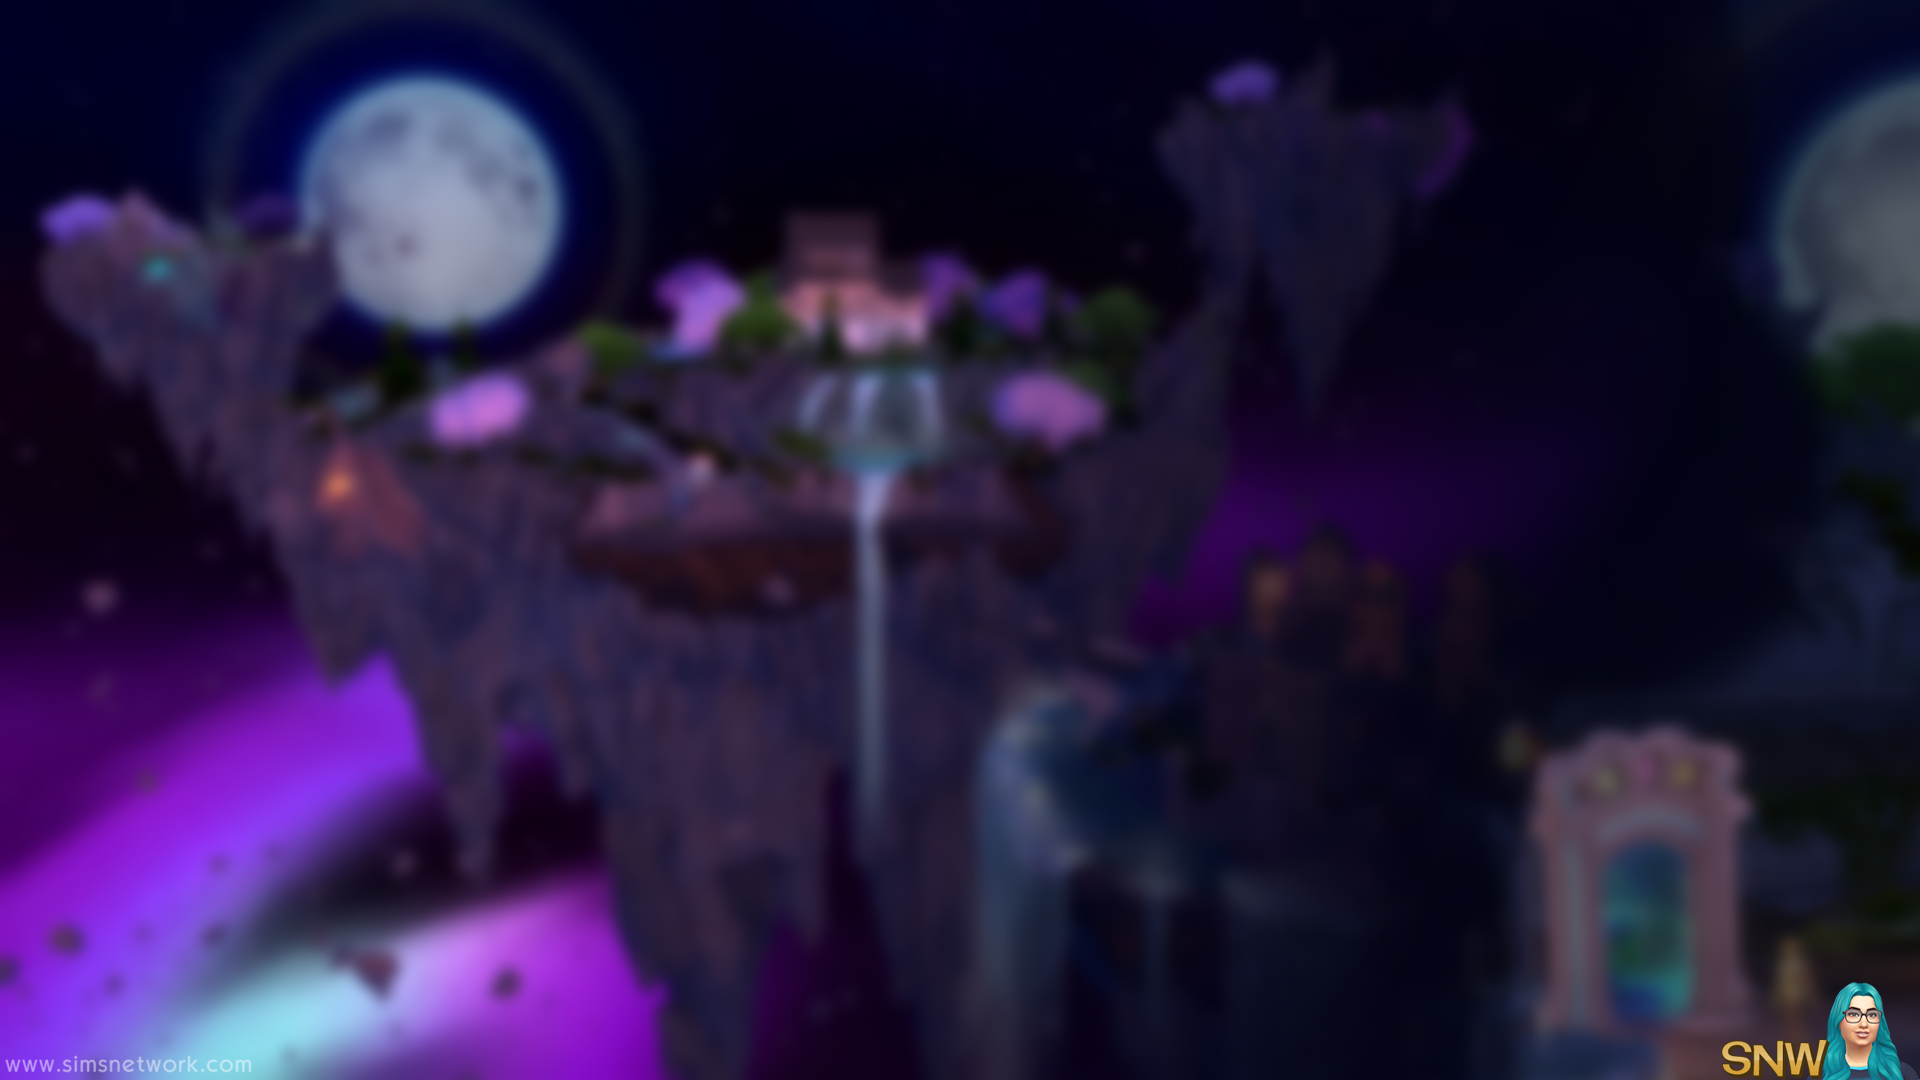 Realm Of Magic Wallpapers Snw Simsnetworkcom